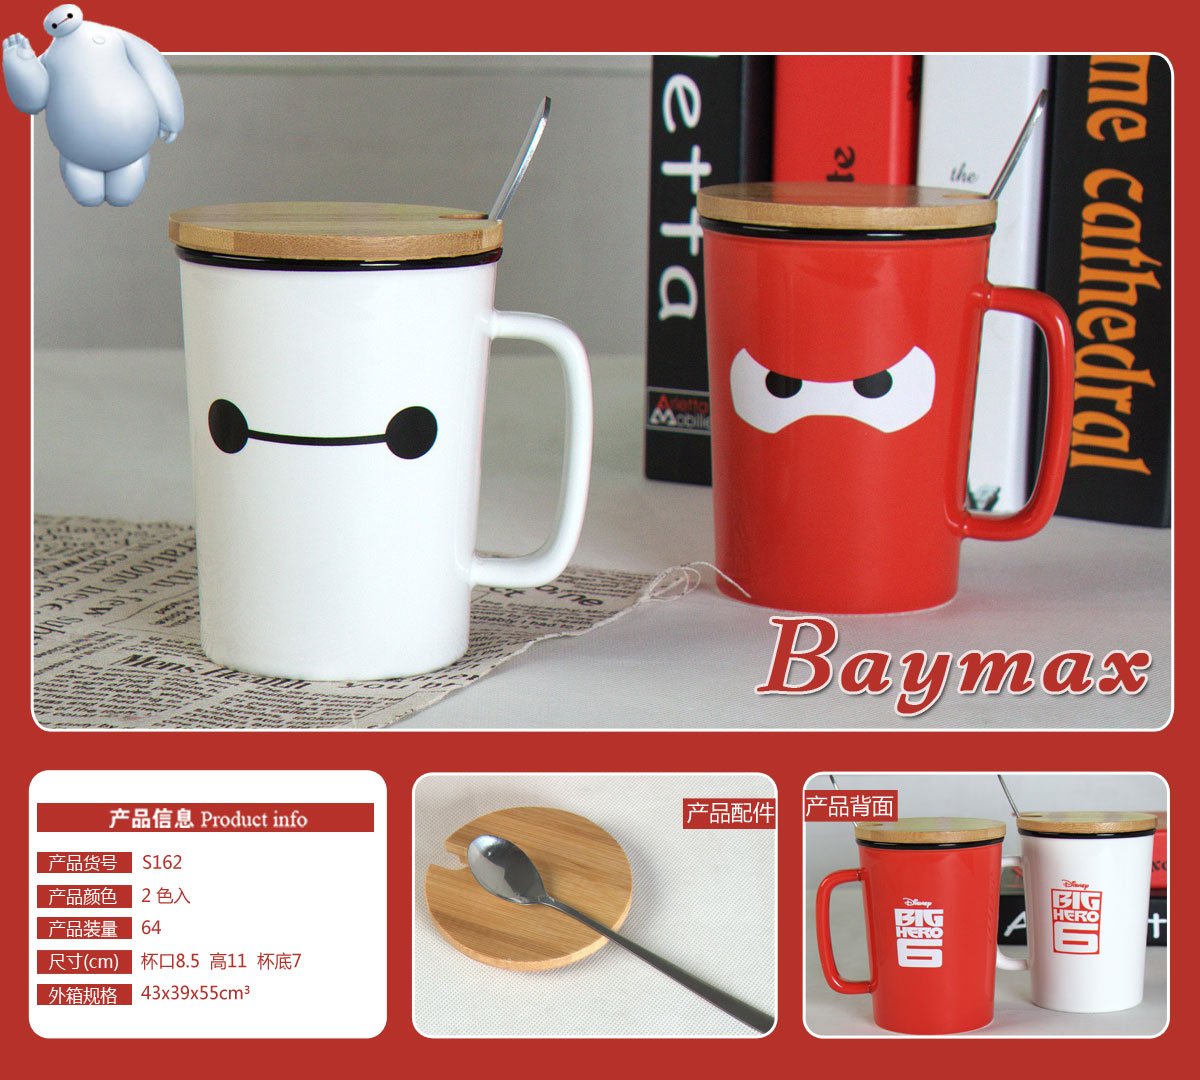 Baymax Travel Mug